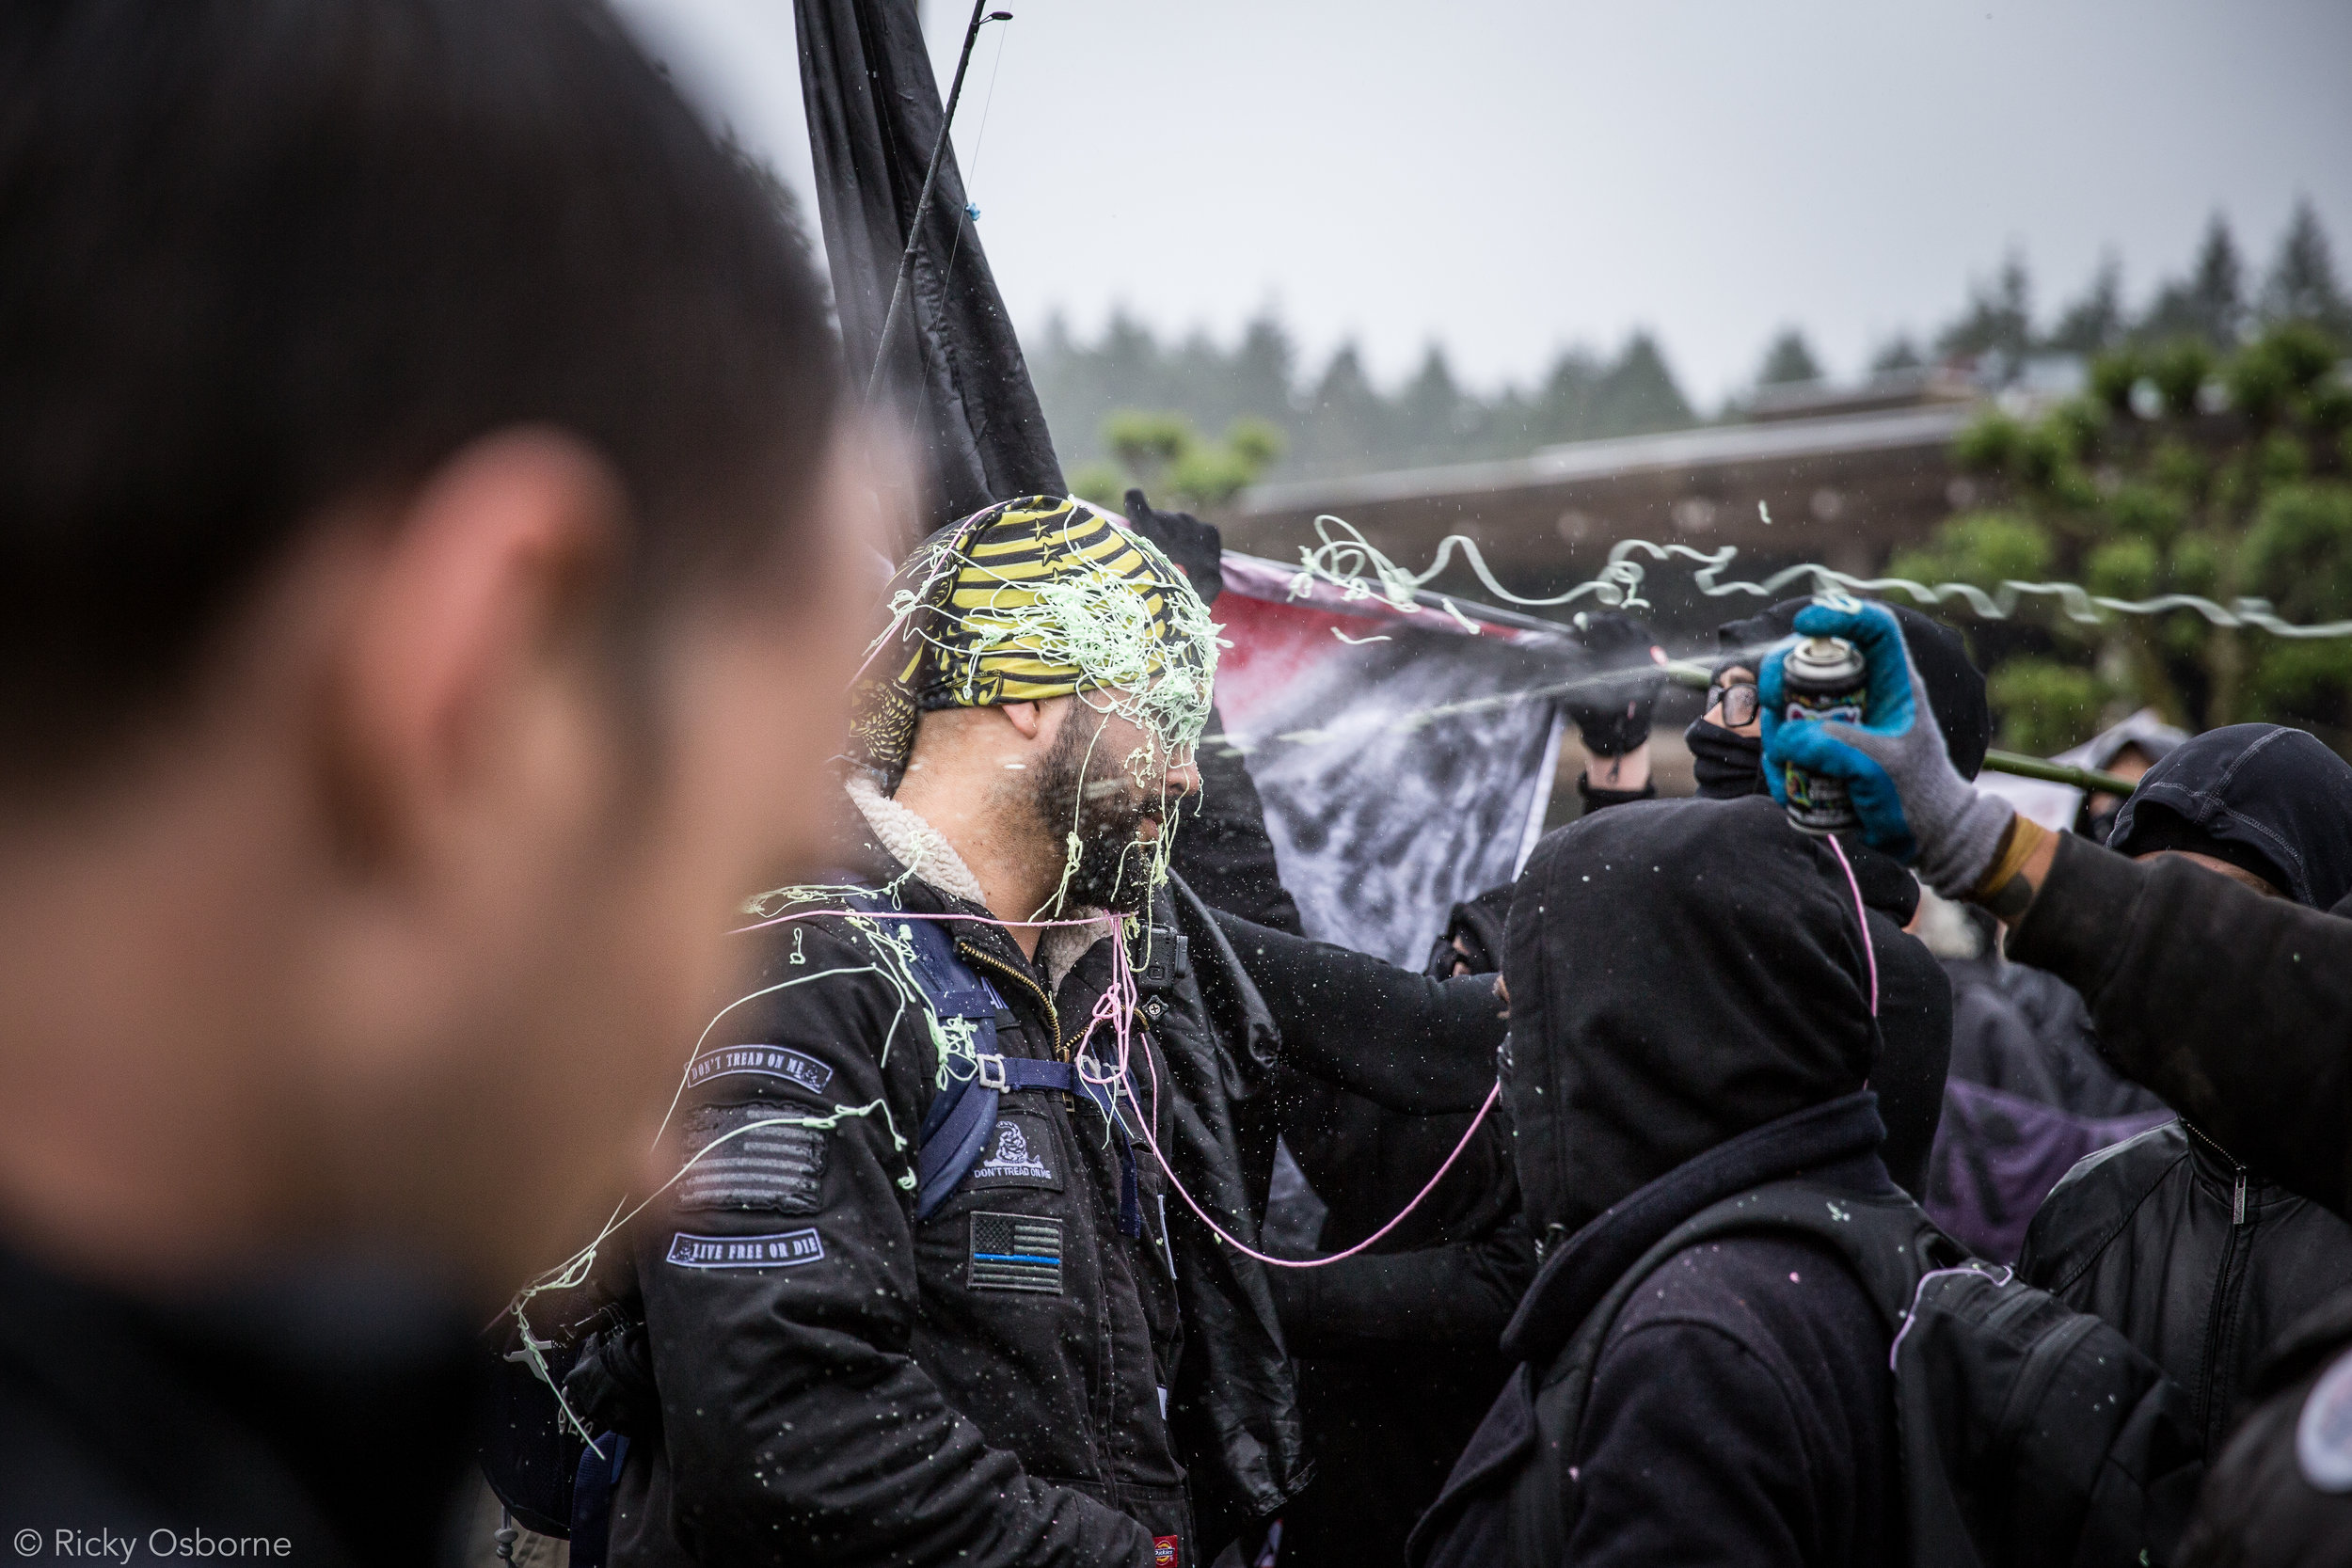 - June 15th, 2017 - Riot police, Patriot Prayer, and demonstrators gather at the Evergreen State College in Olympia, Washington.